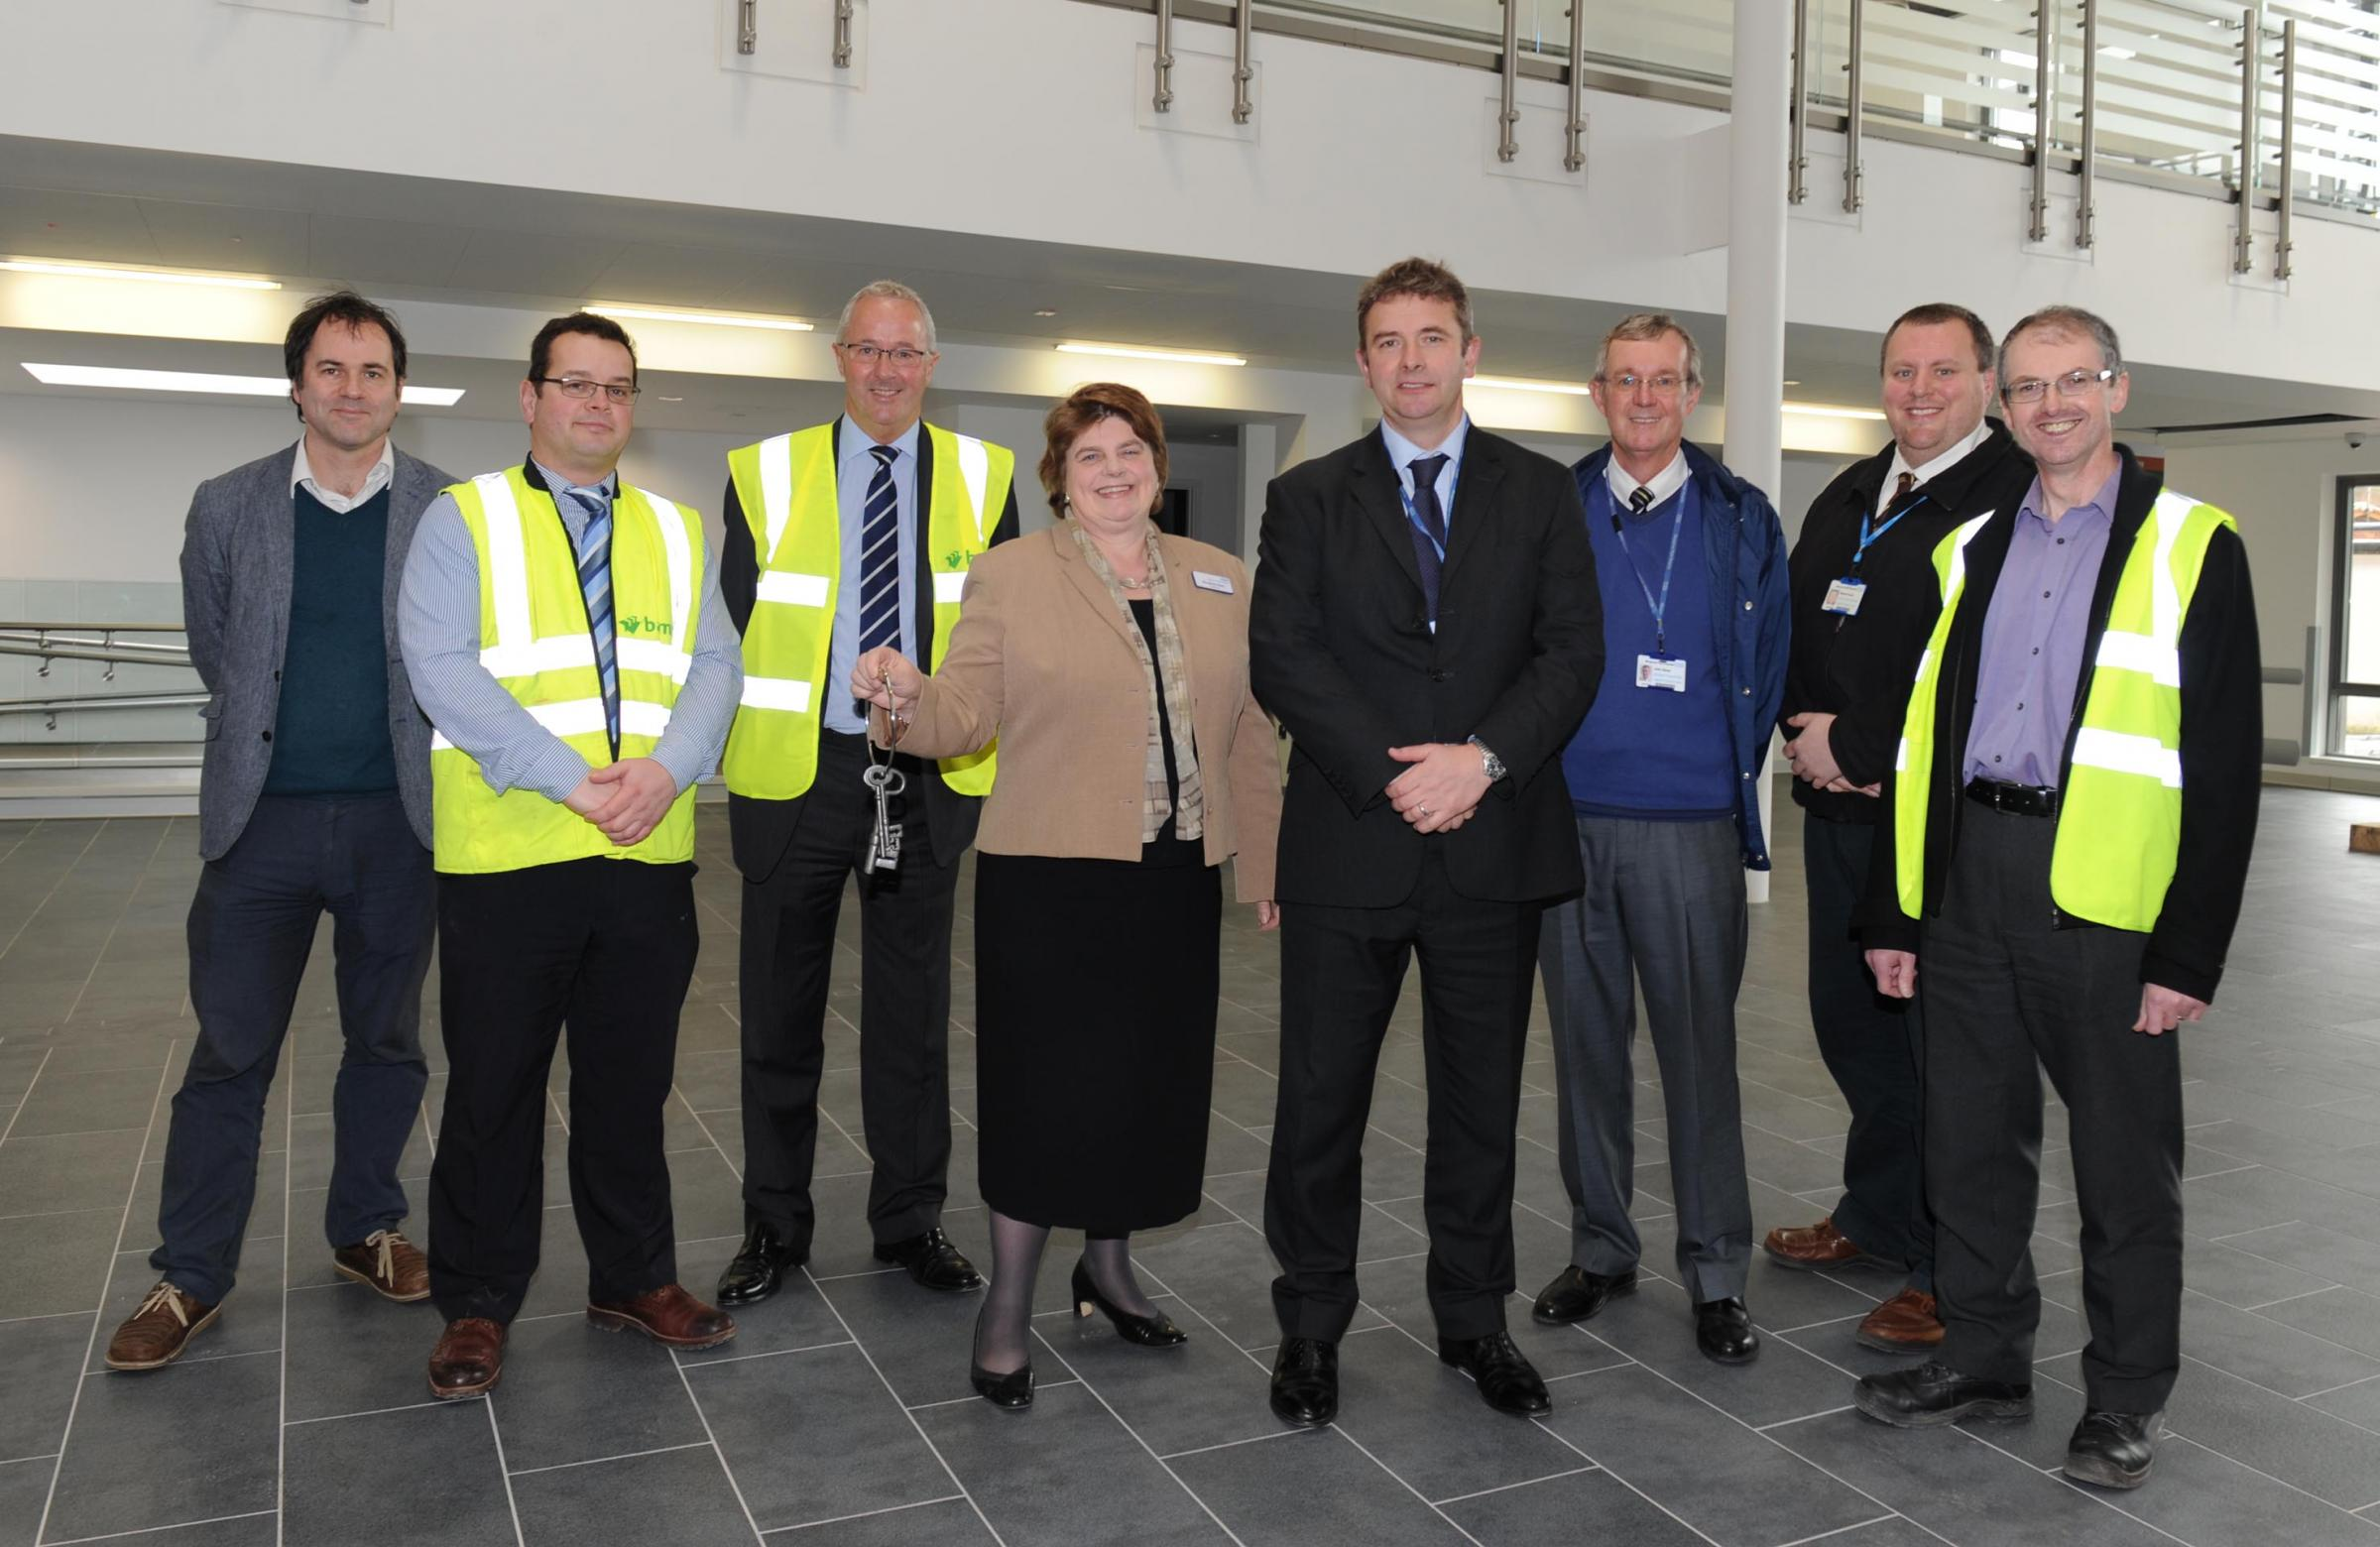 £34m Jubilee Building keys handed over to Taunton's Musgrove Park Hospital